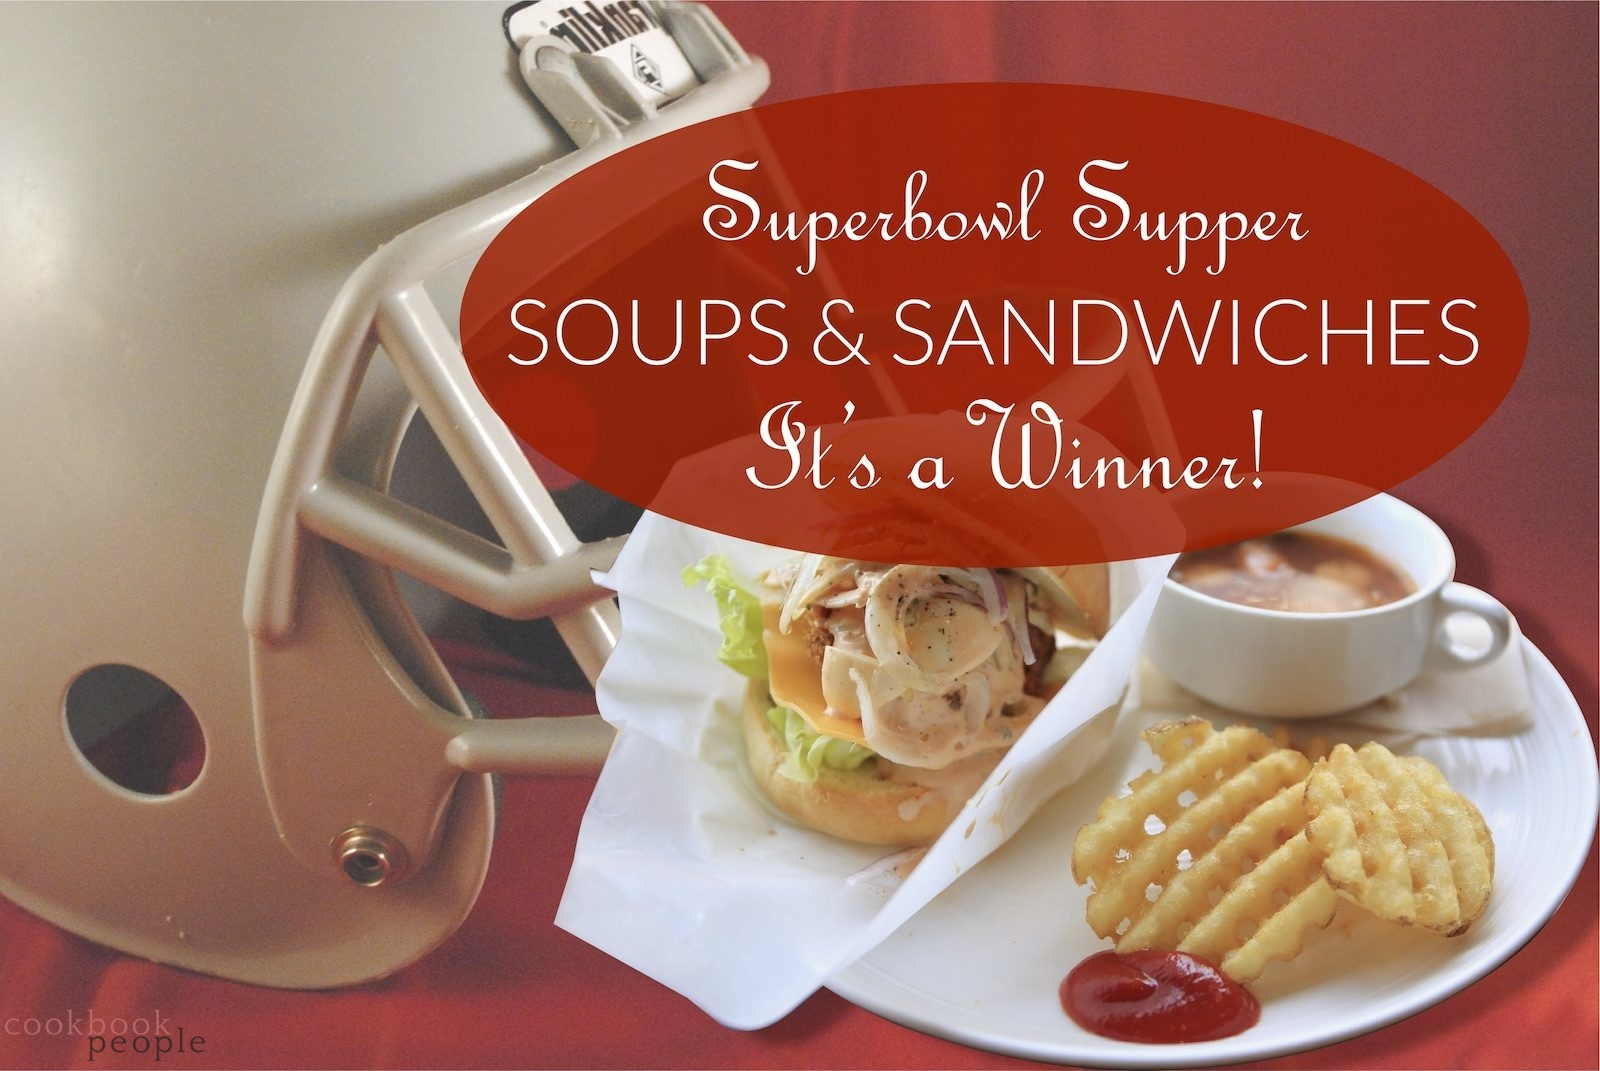 Football helmet with mug of soup and sandwich on red background + title: Superbowl Supper - Soups and Sandwiches - It's a Winner!